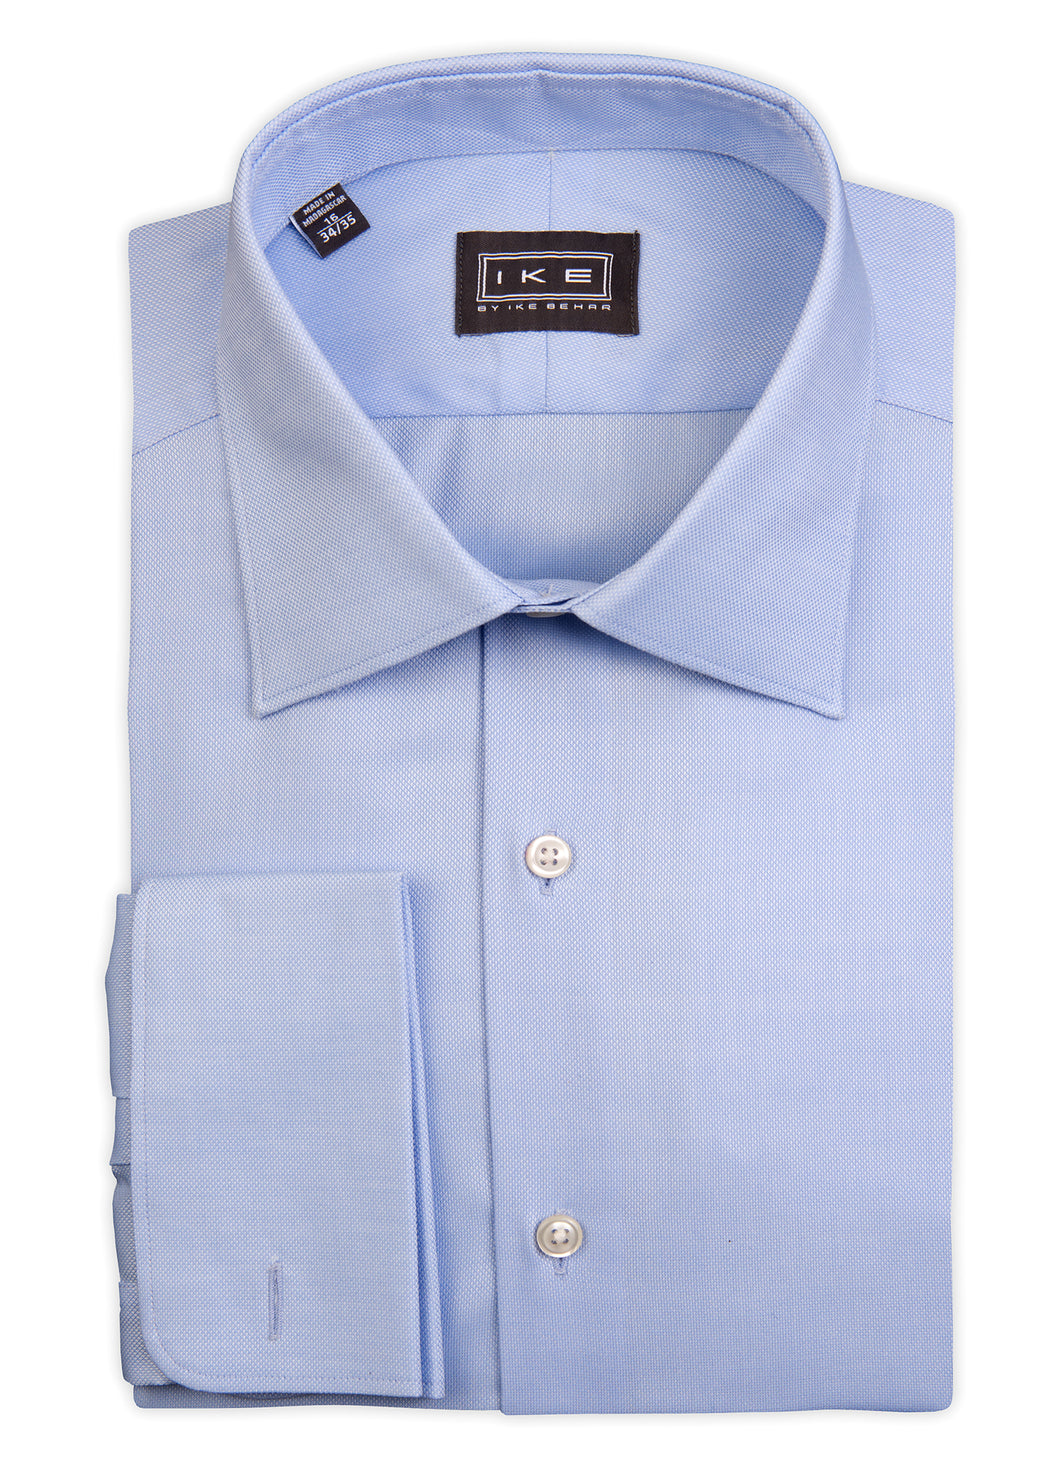 Blue Royal Oxford French Cuff Ike by Ike Behar Dress Shirt